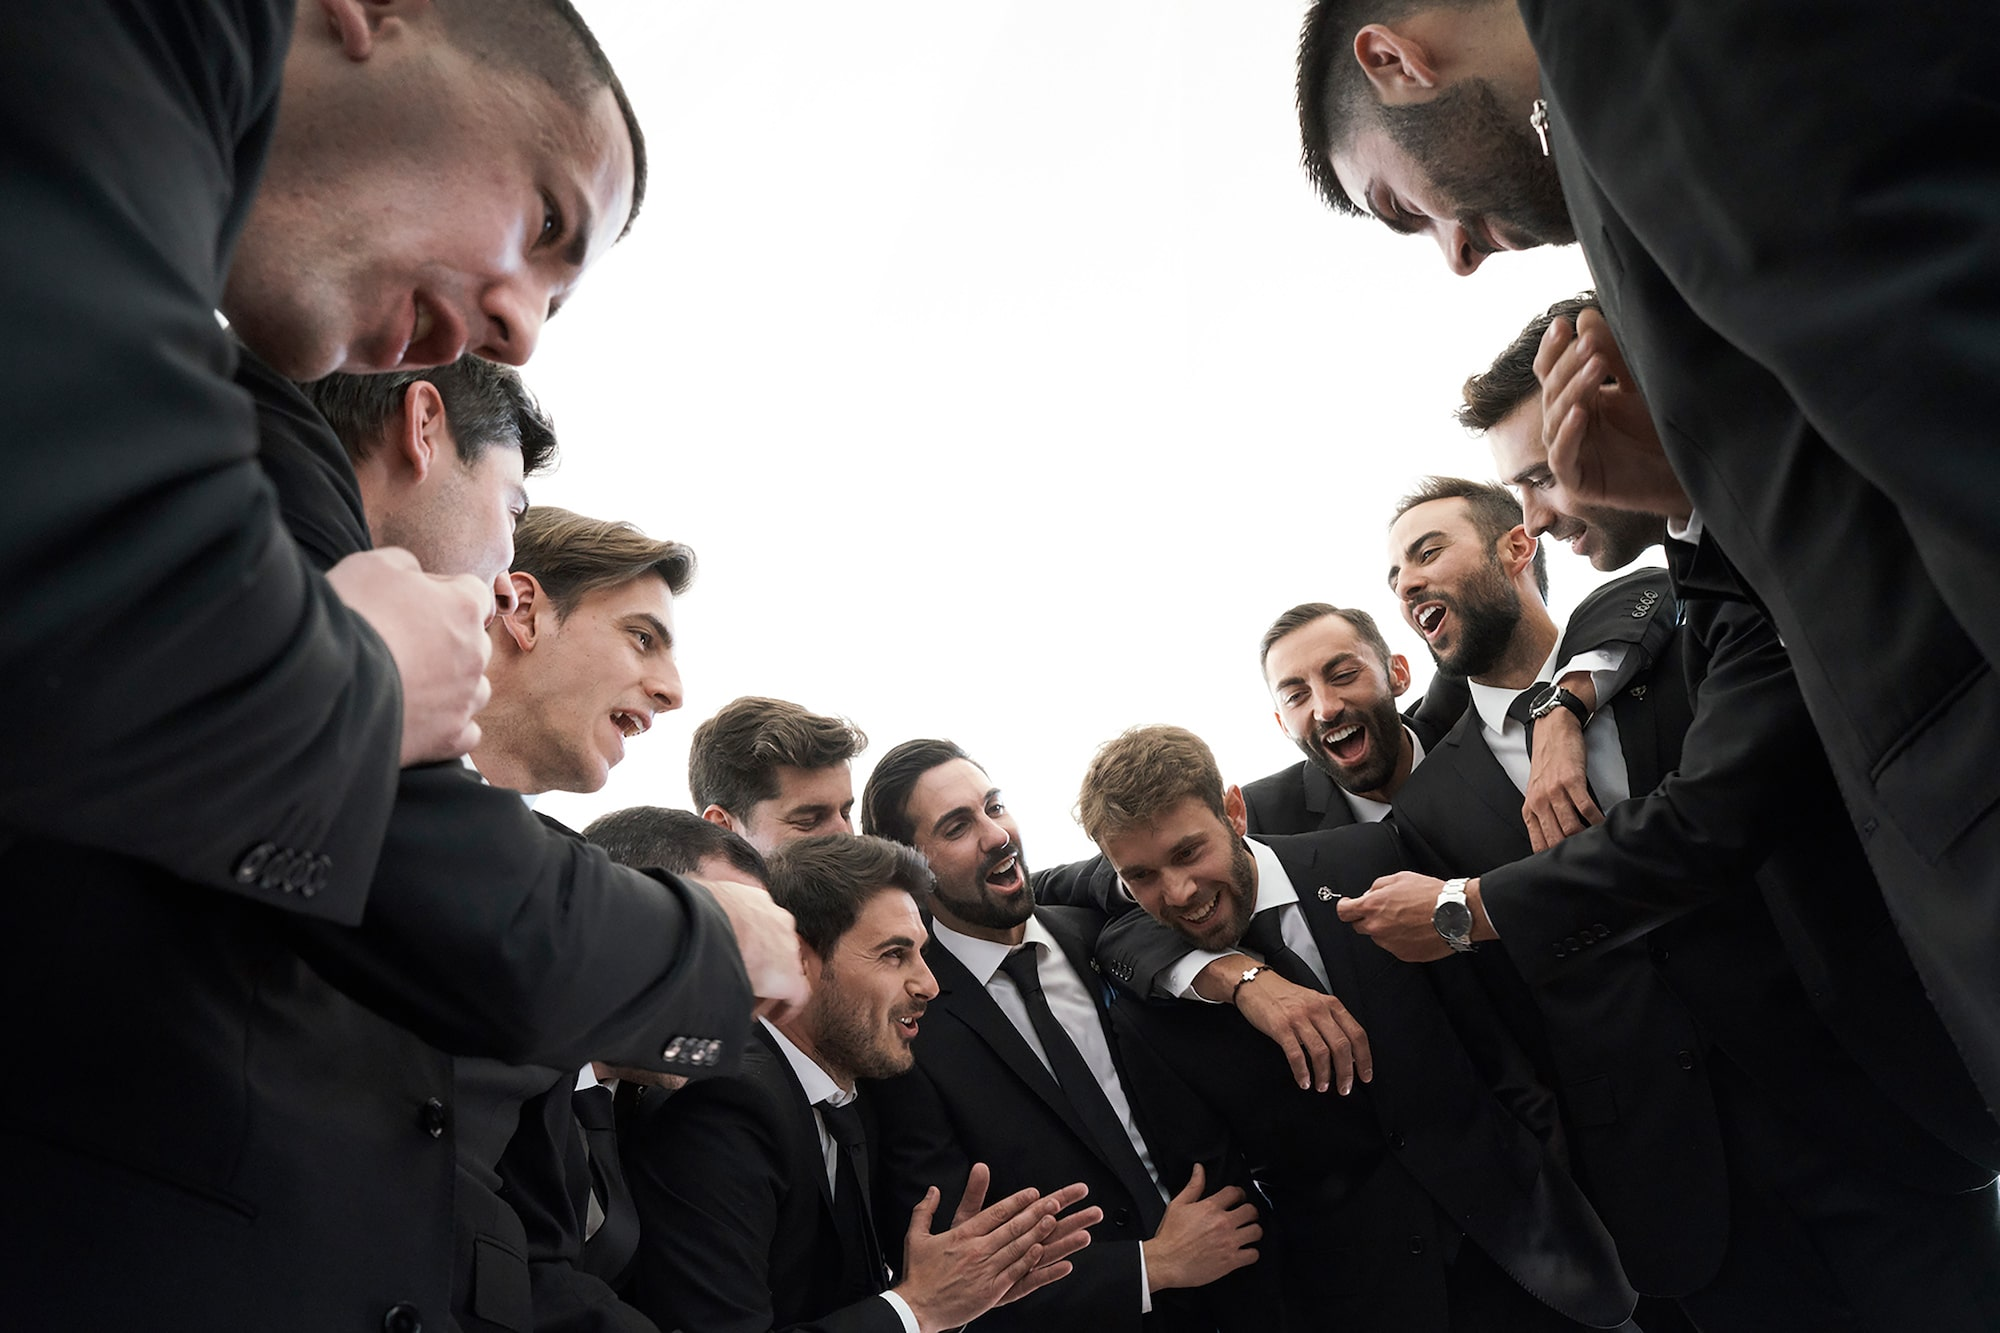 jorge miguel jaime baez sony alpha 7RIII the groom and his best men stand in a circle embracing each other